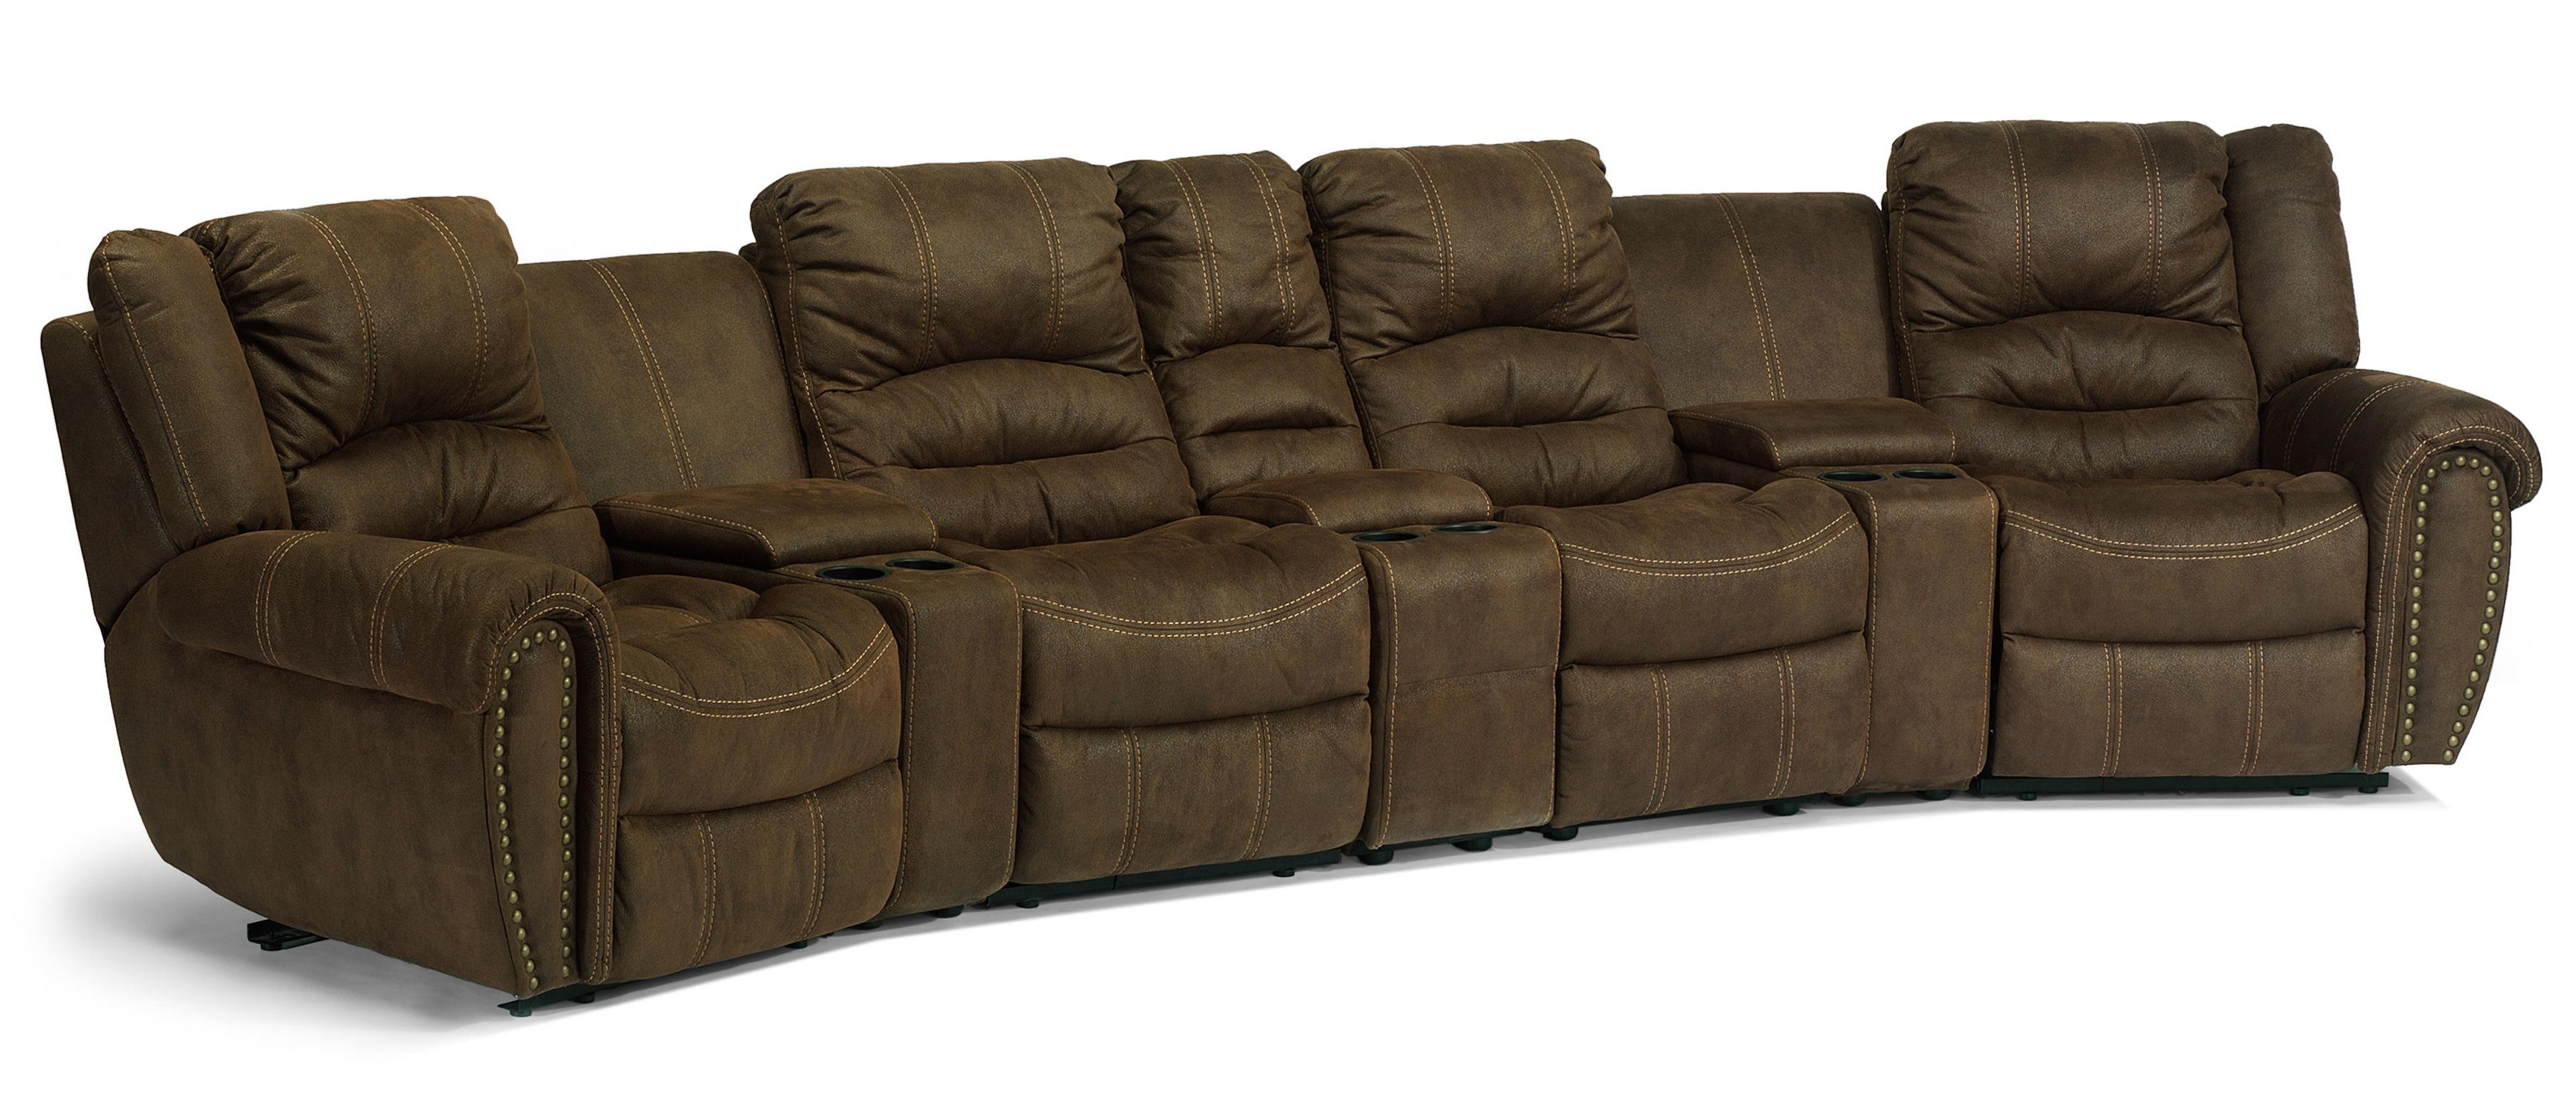 Featured Image of Curved Recliner Sofa